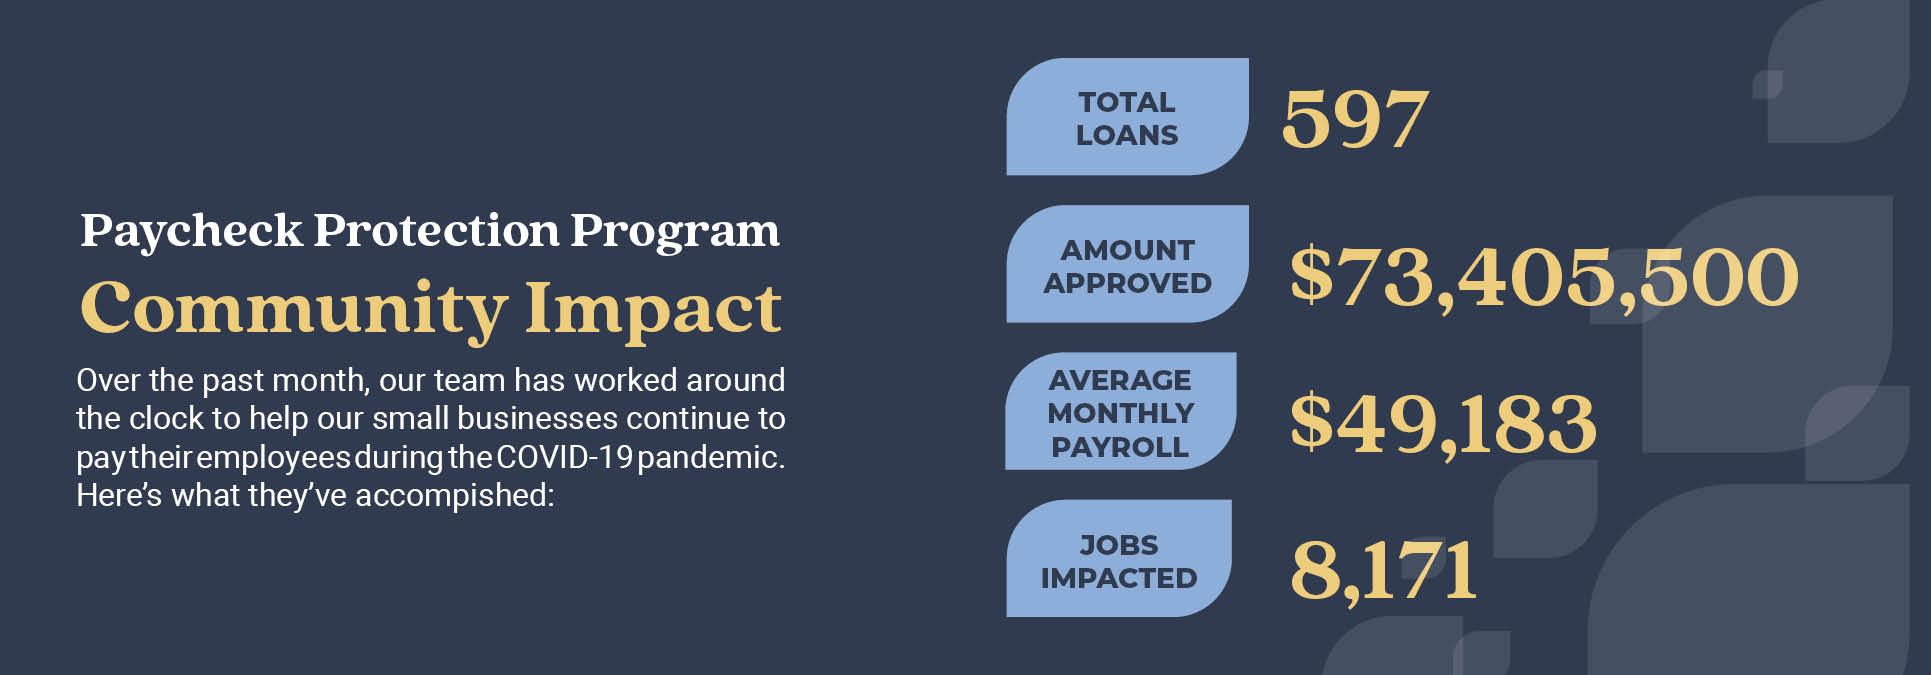 ayroll Protection Program Community Impact. 597 loans granted for a total of $73,405,500. These loans cover an average payroll of $49,183 and impact 8,171 jobs in our community.